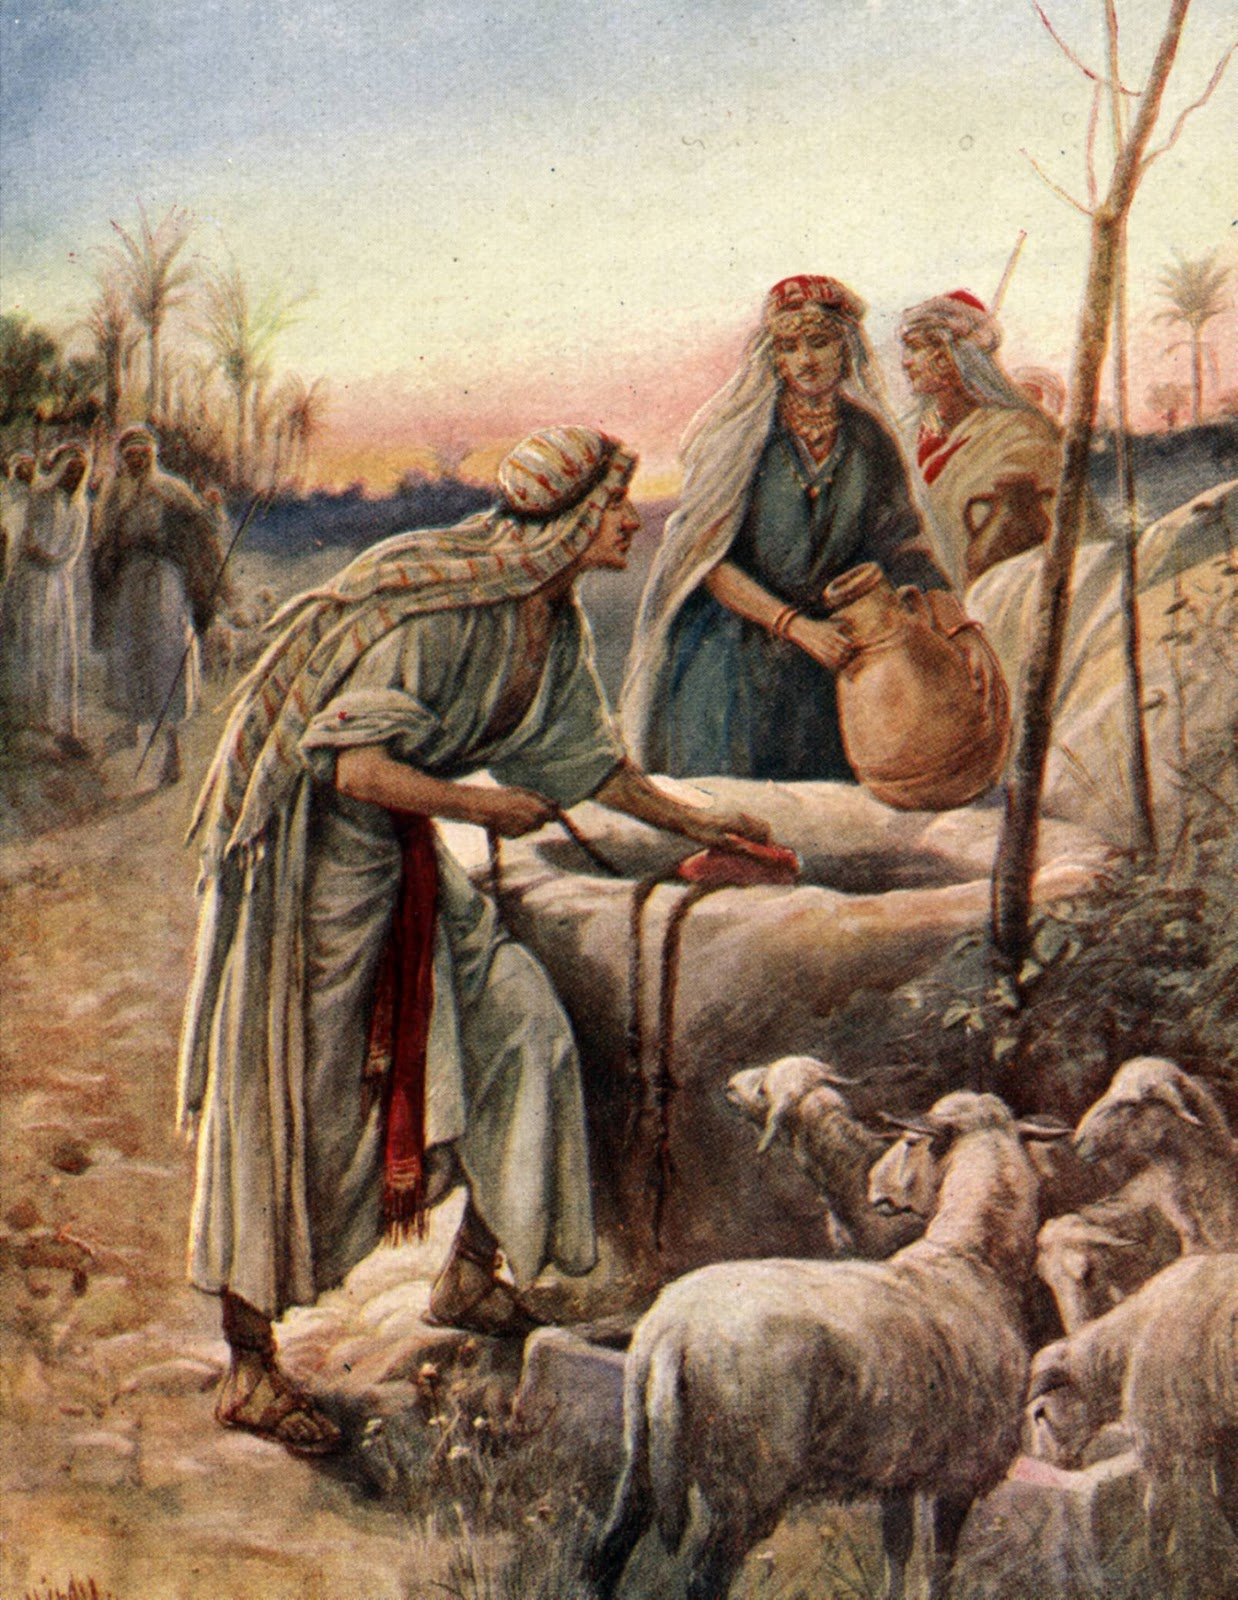 Moses - Free Bible images: Find a story Moses story with pictures